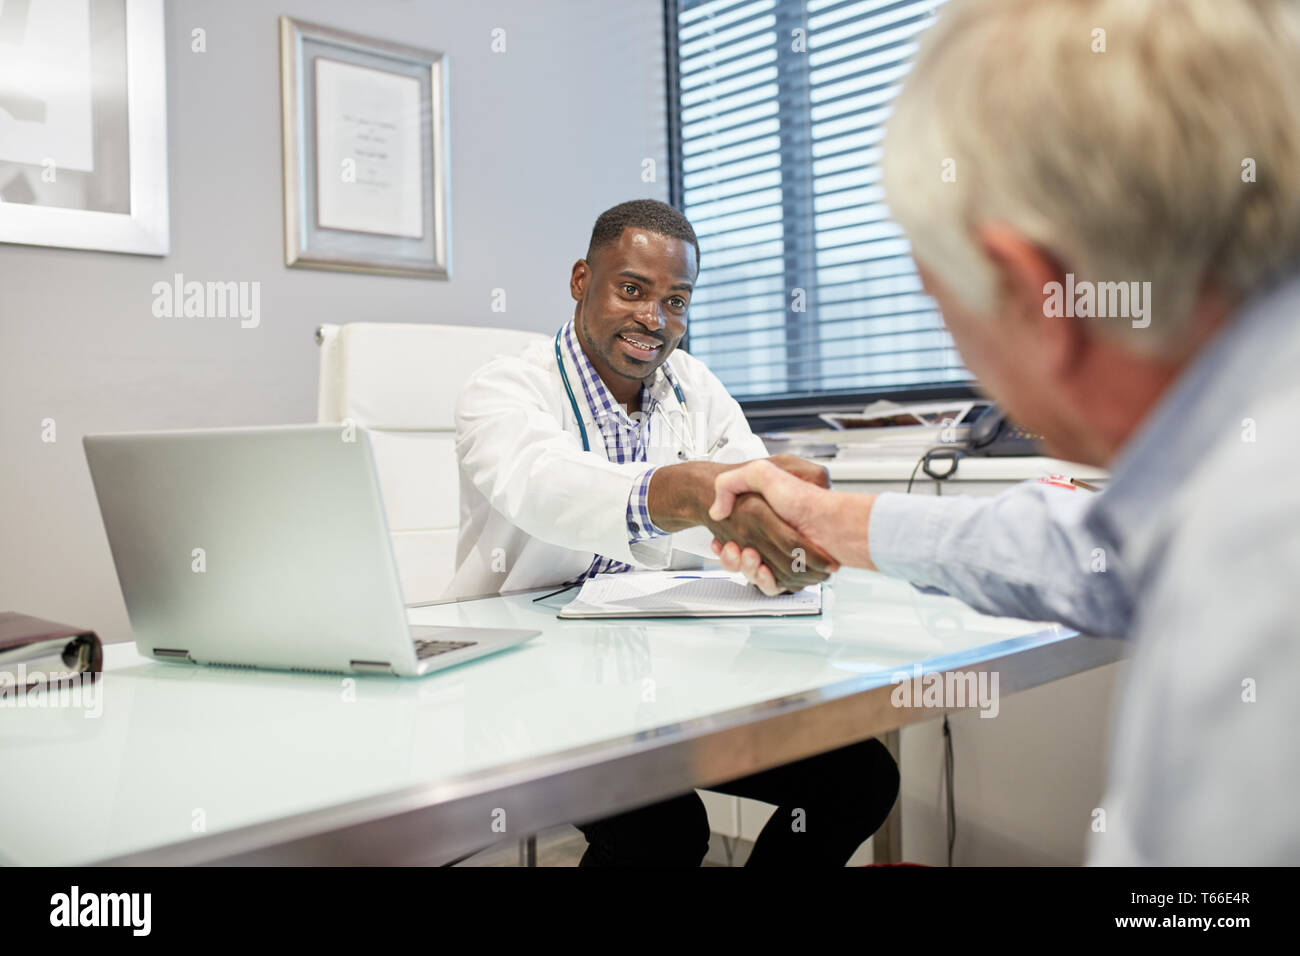 Male doctor shaking hands with senior patient in doctors office Stock Photo